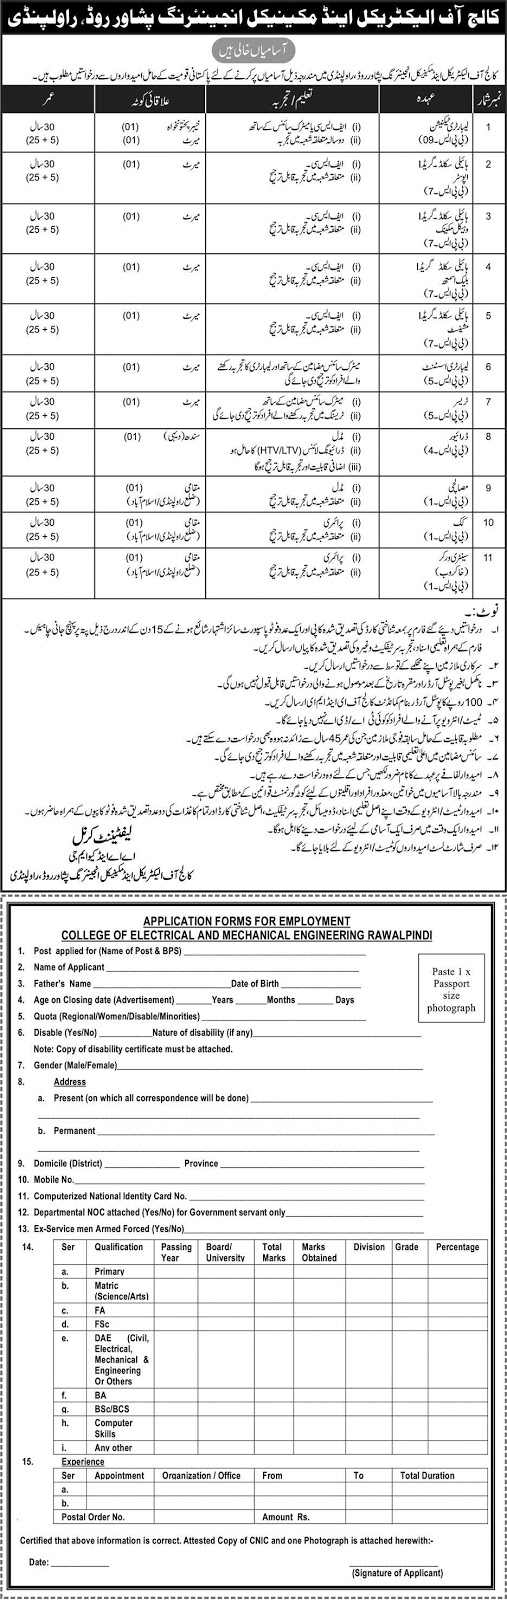 Peshawar Road Rawalpindi College Of Electrical And Mechanical Engineering jobs 14 may 2017